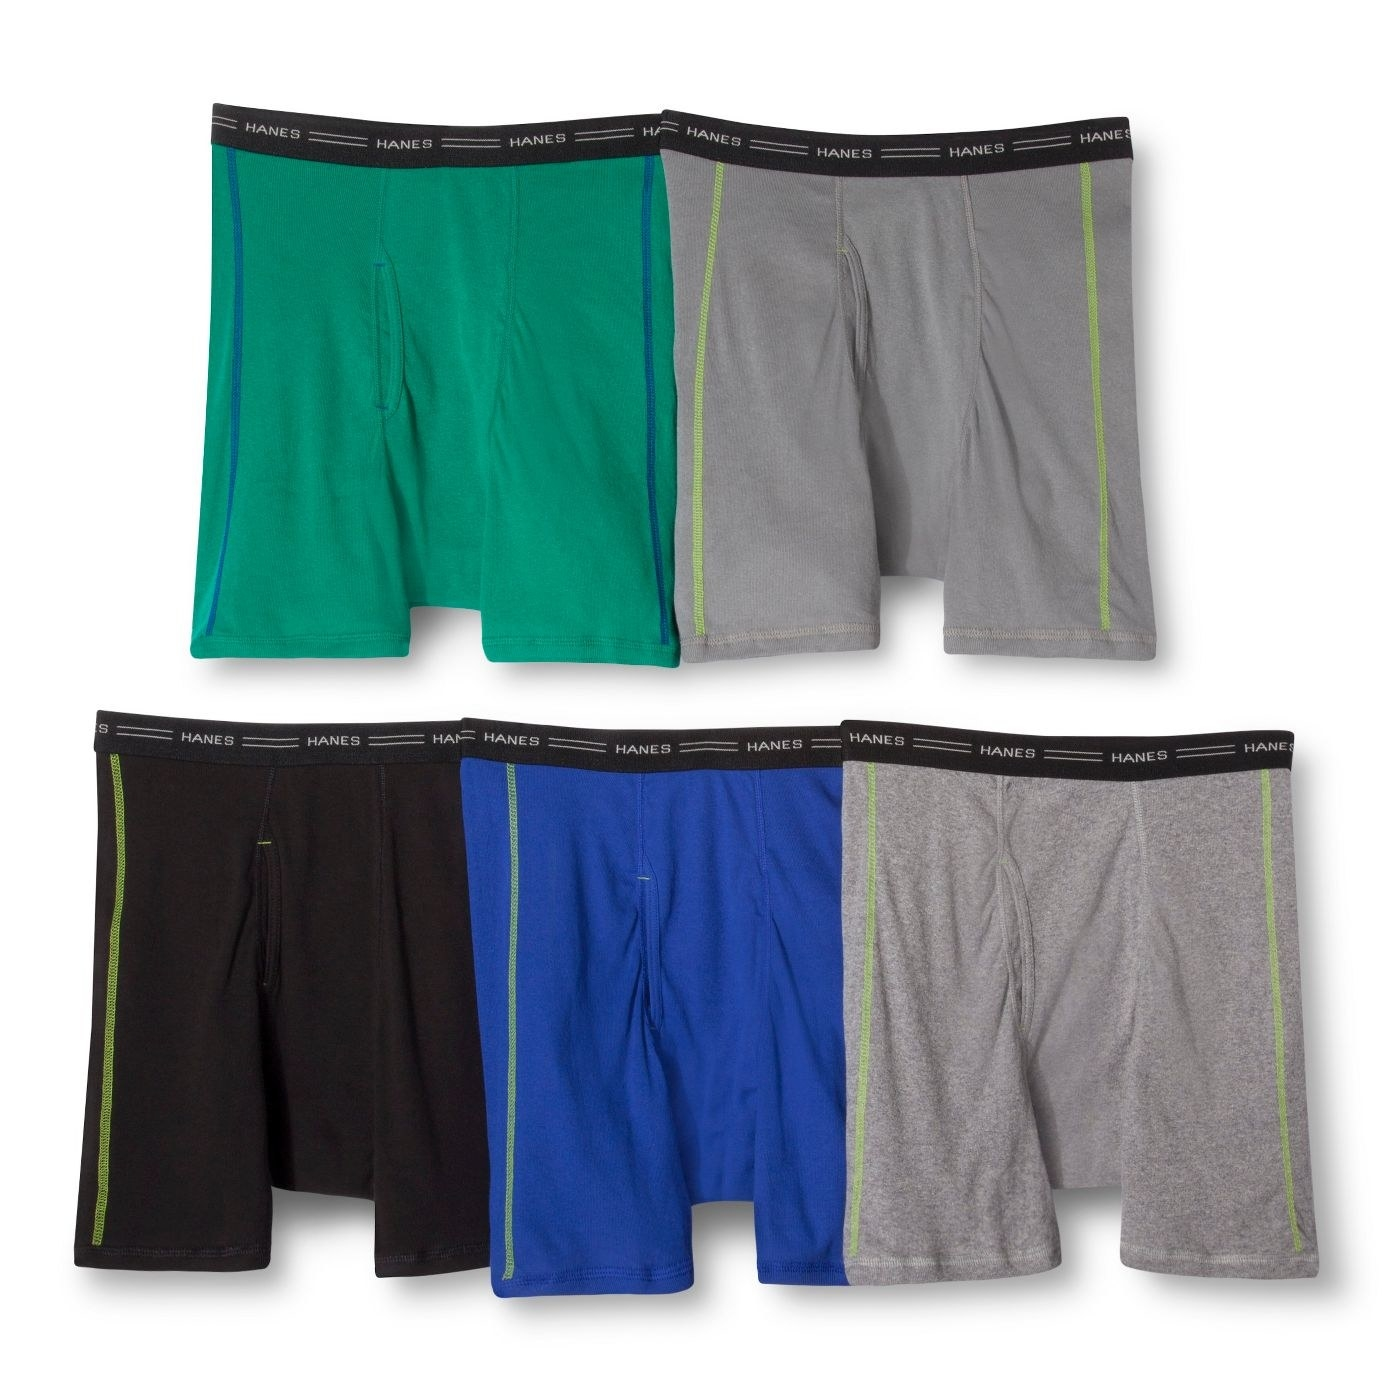 the boxers shown in multiple colors